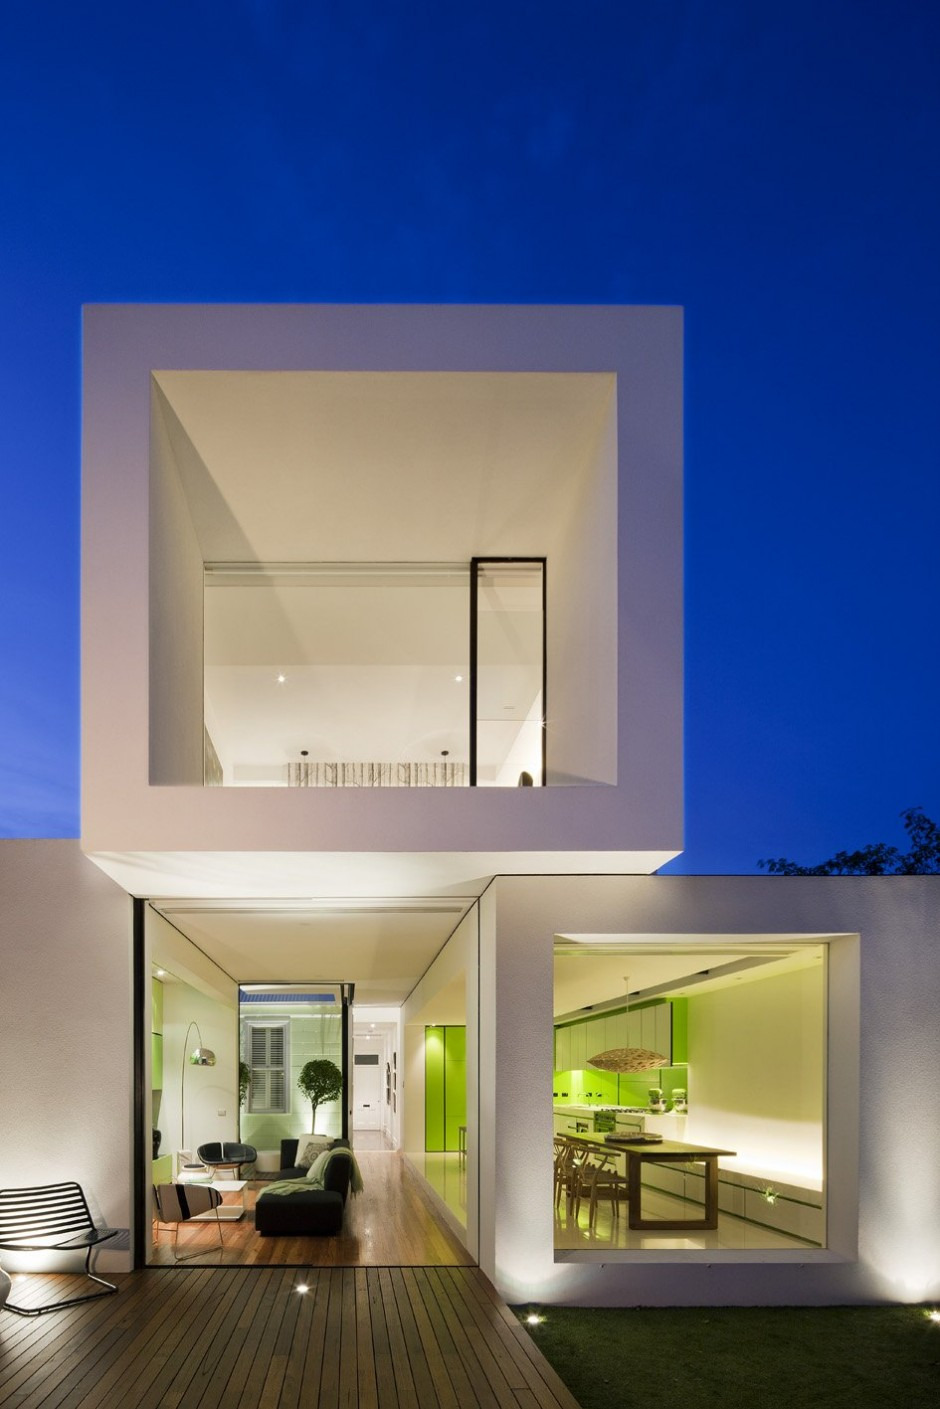 Small Minimalist Home With Creative Design featured on architecture beast 16